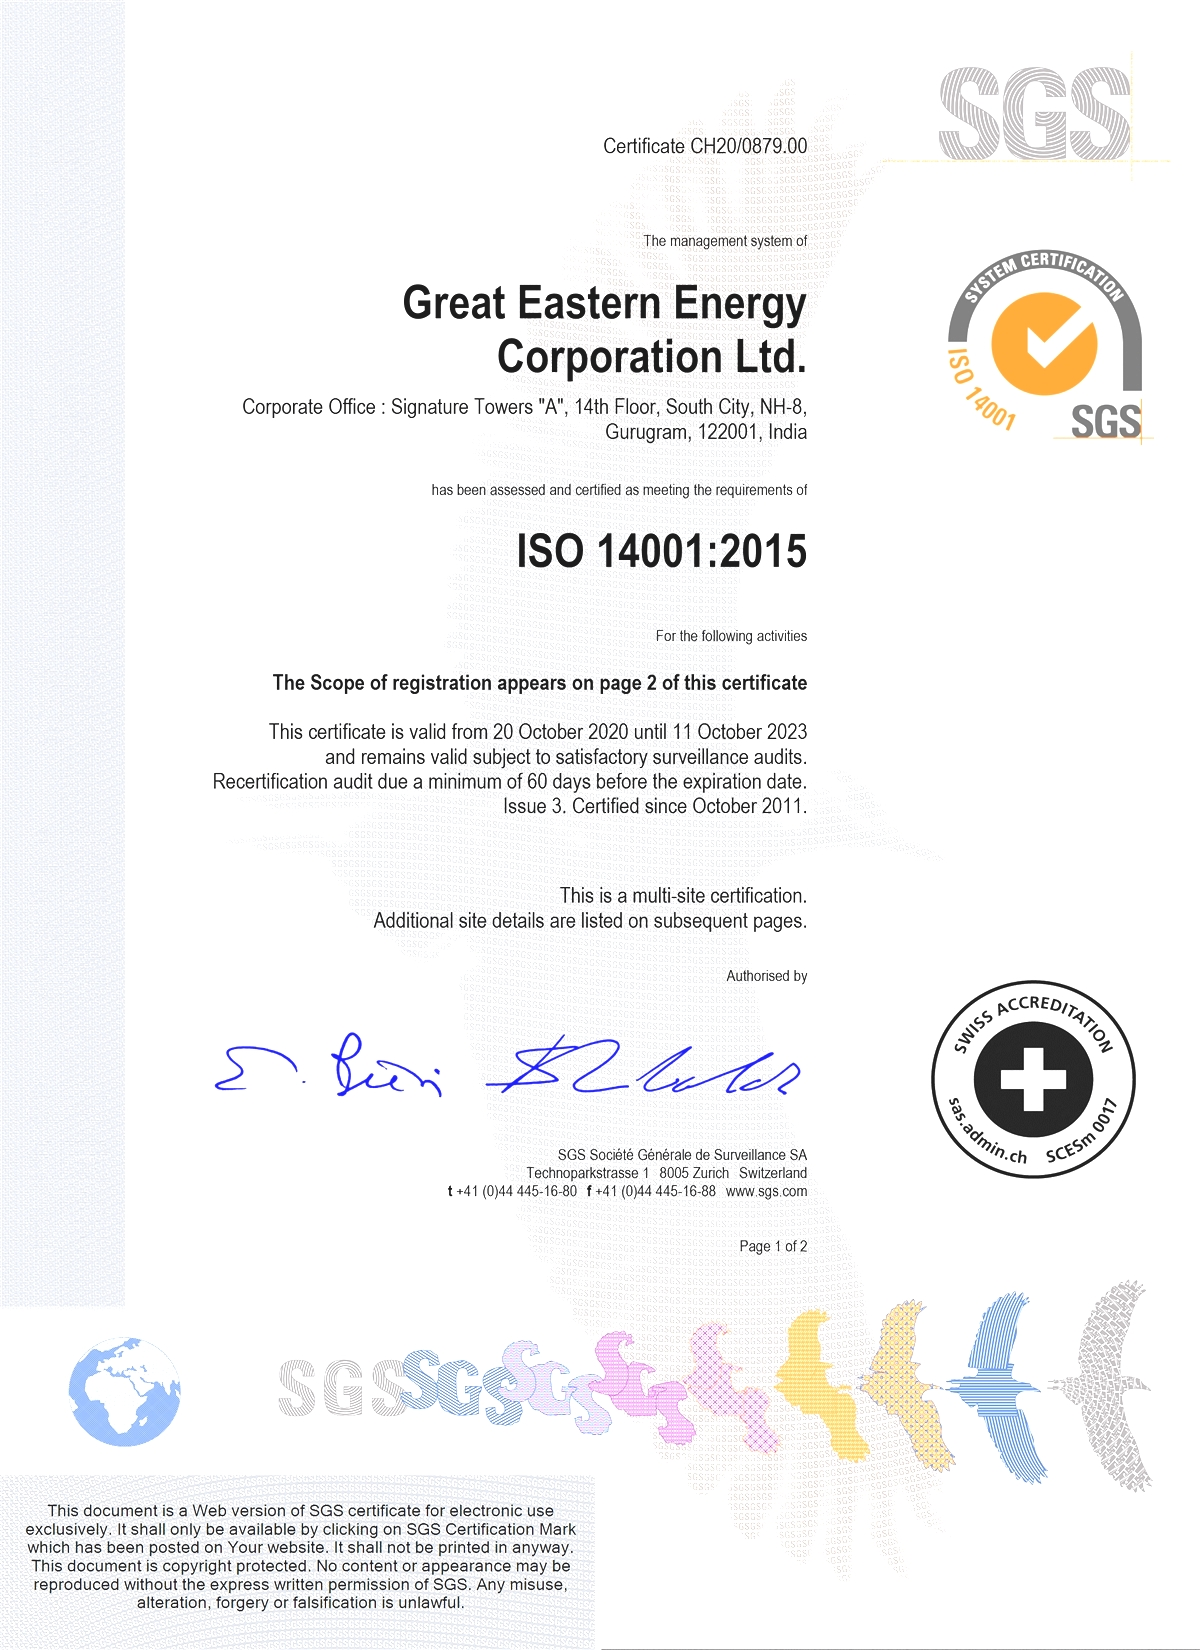 GEECL ISO 14001:2004 Certificate